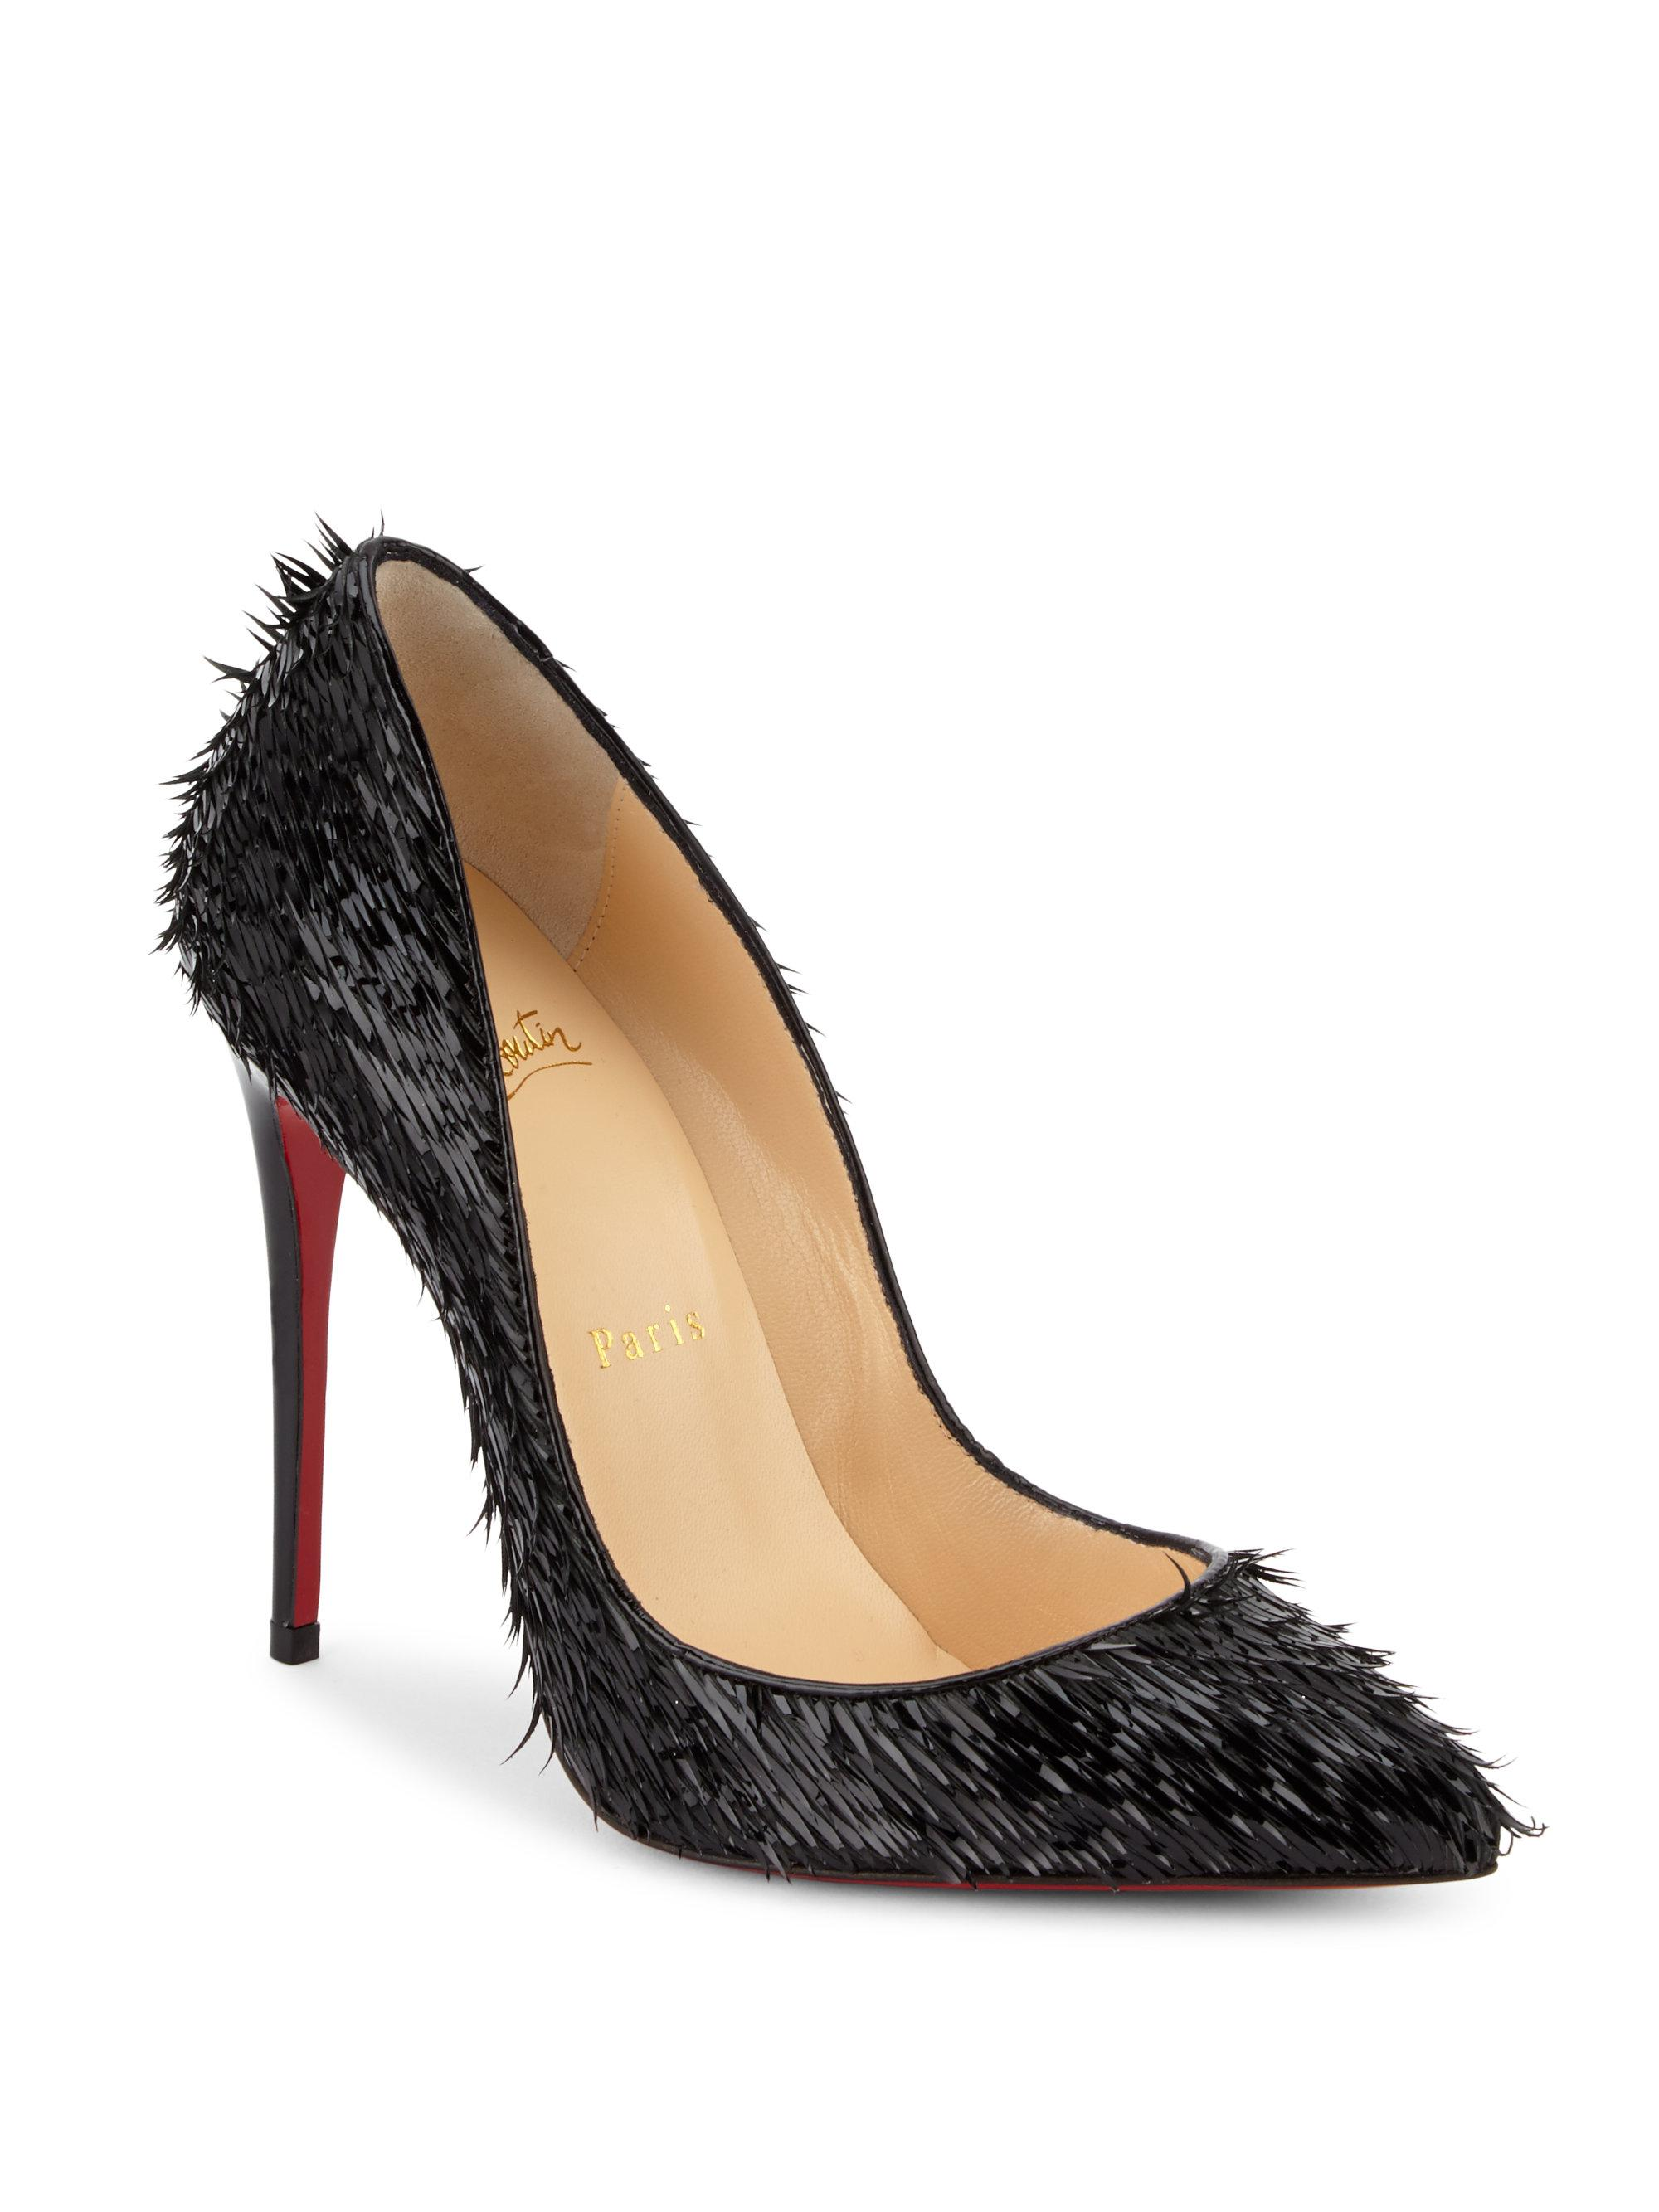 54b604d45c8 Christian Louboutin Black Pigalle Follies 100 Fringed Patent-leather Pumps